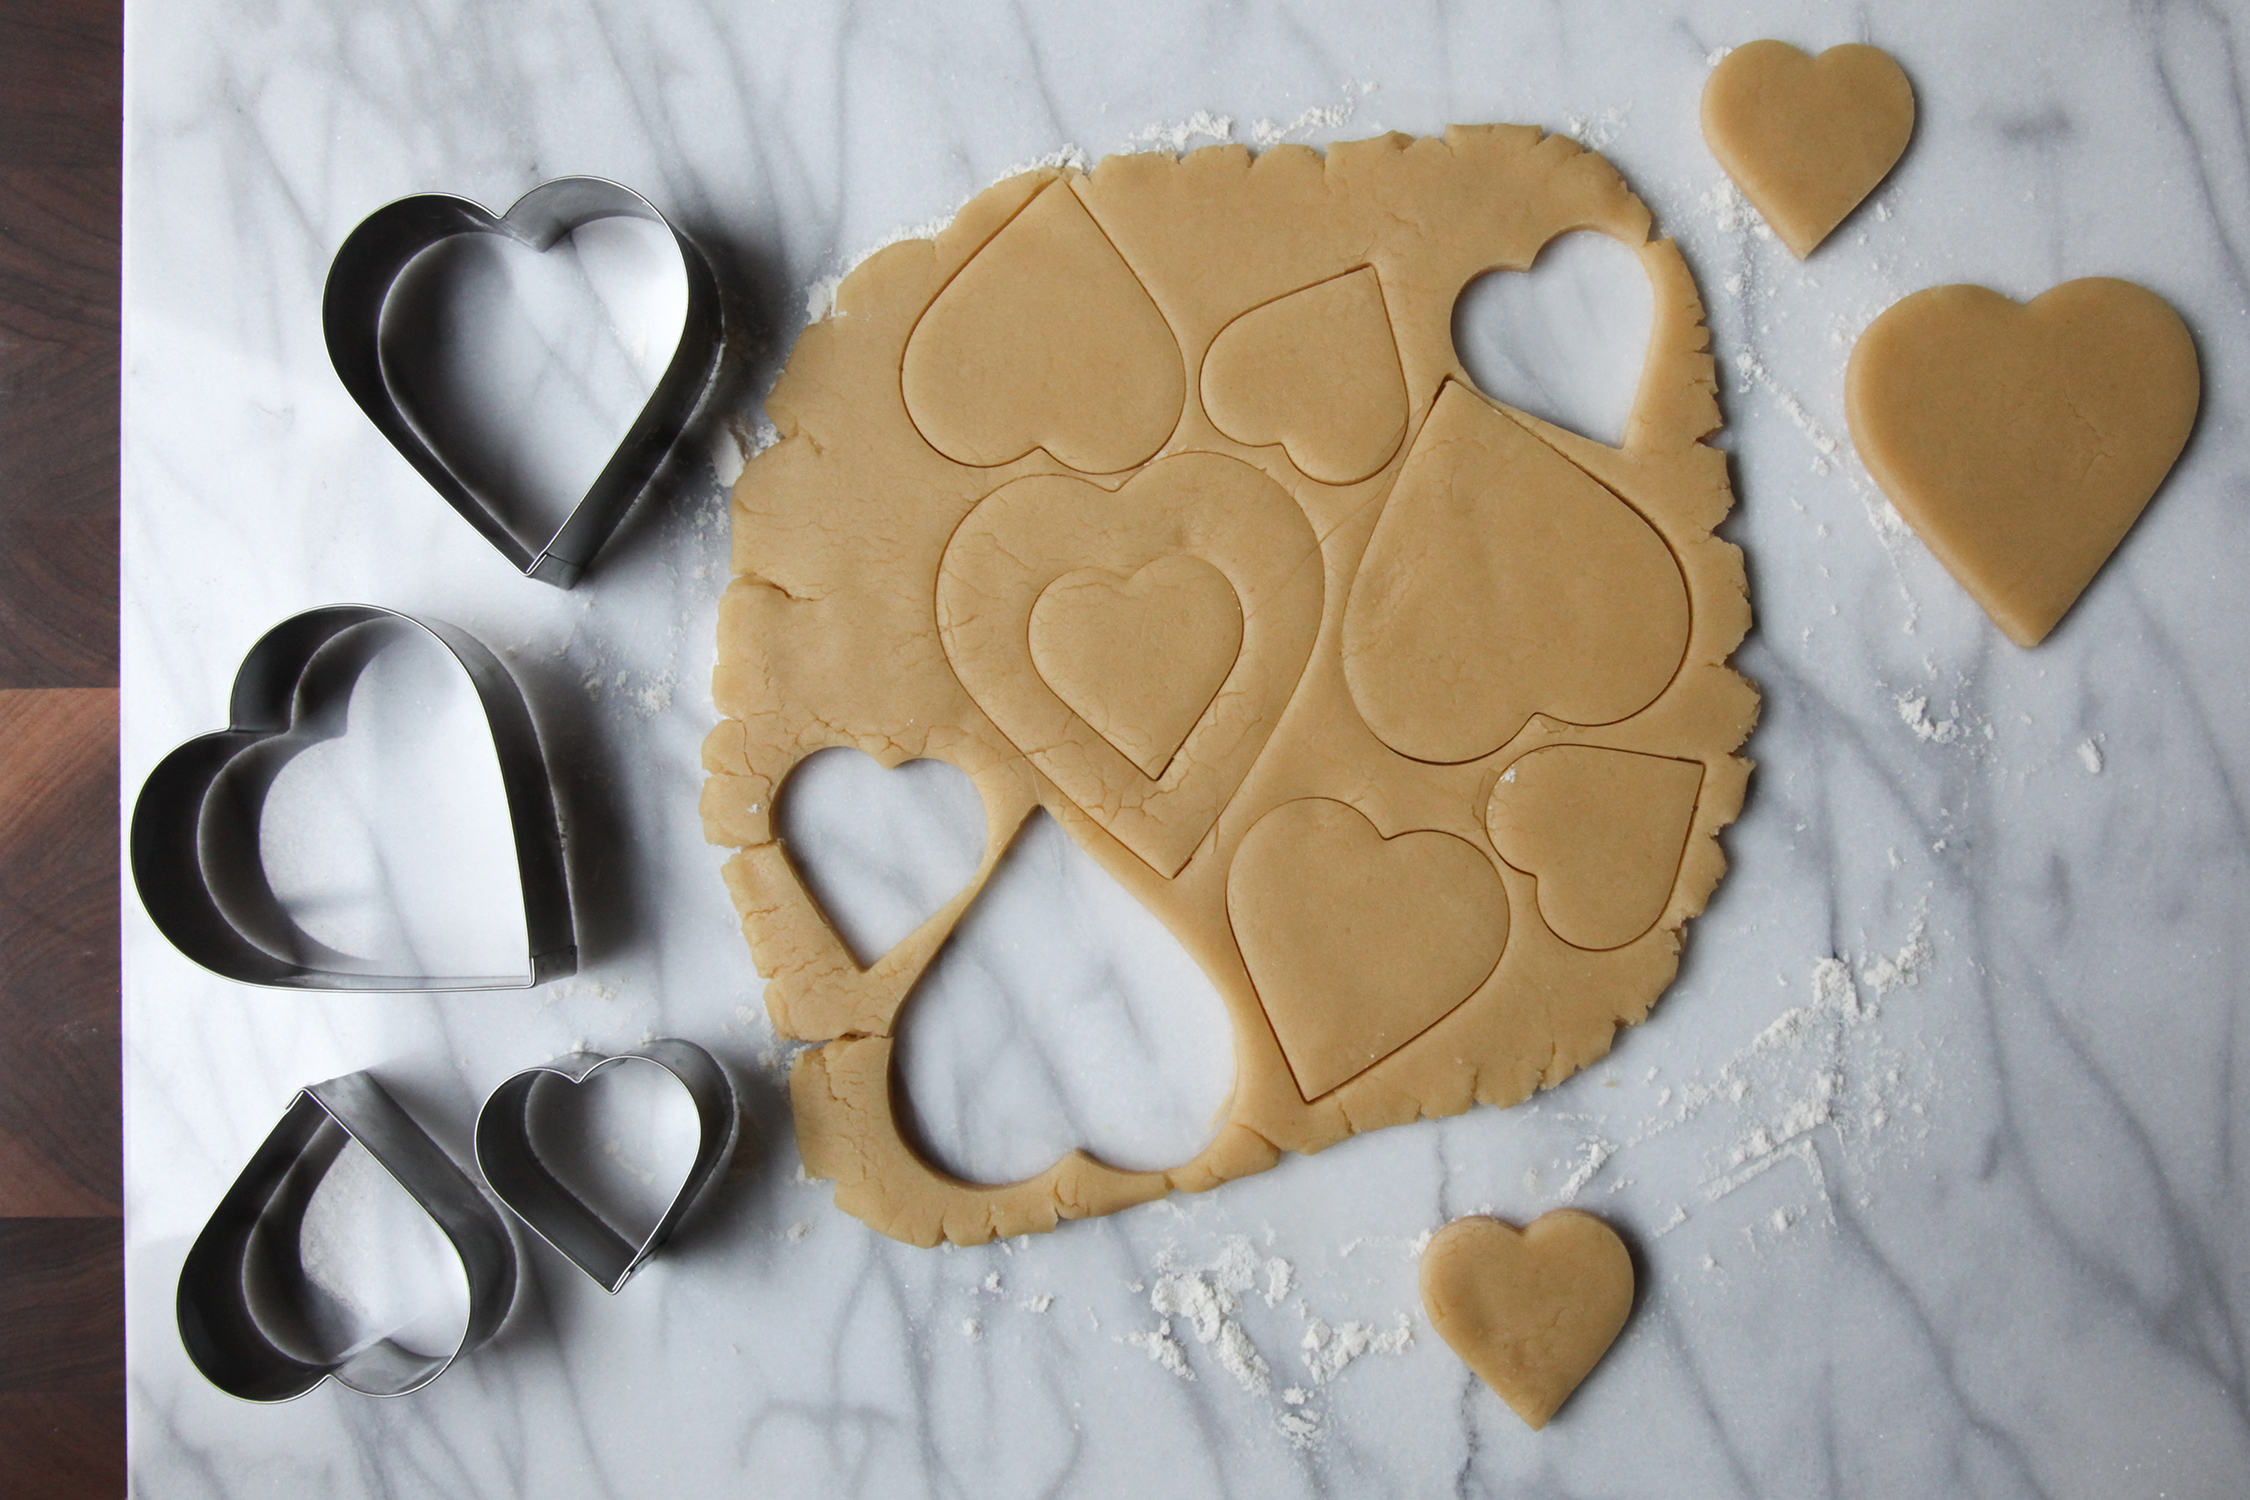 Cutting out heart sugar cookies